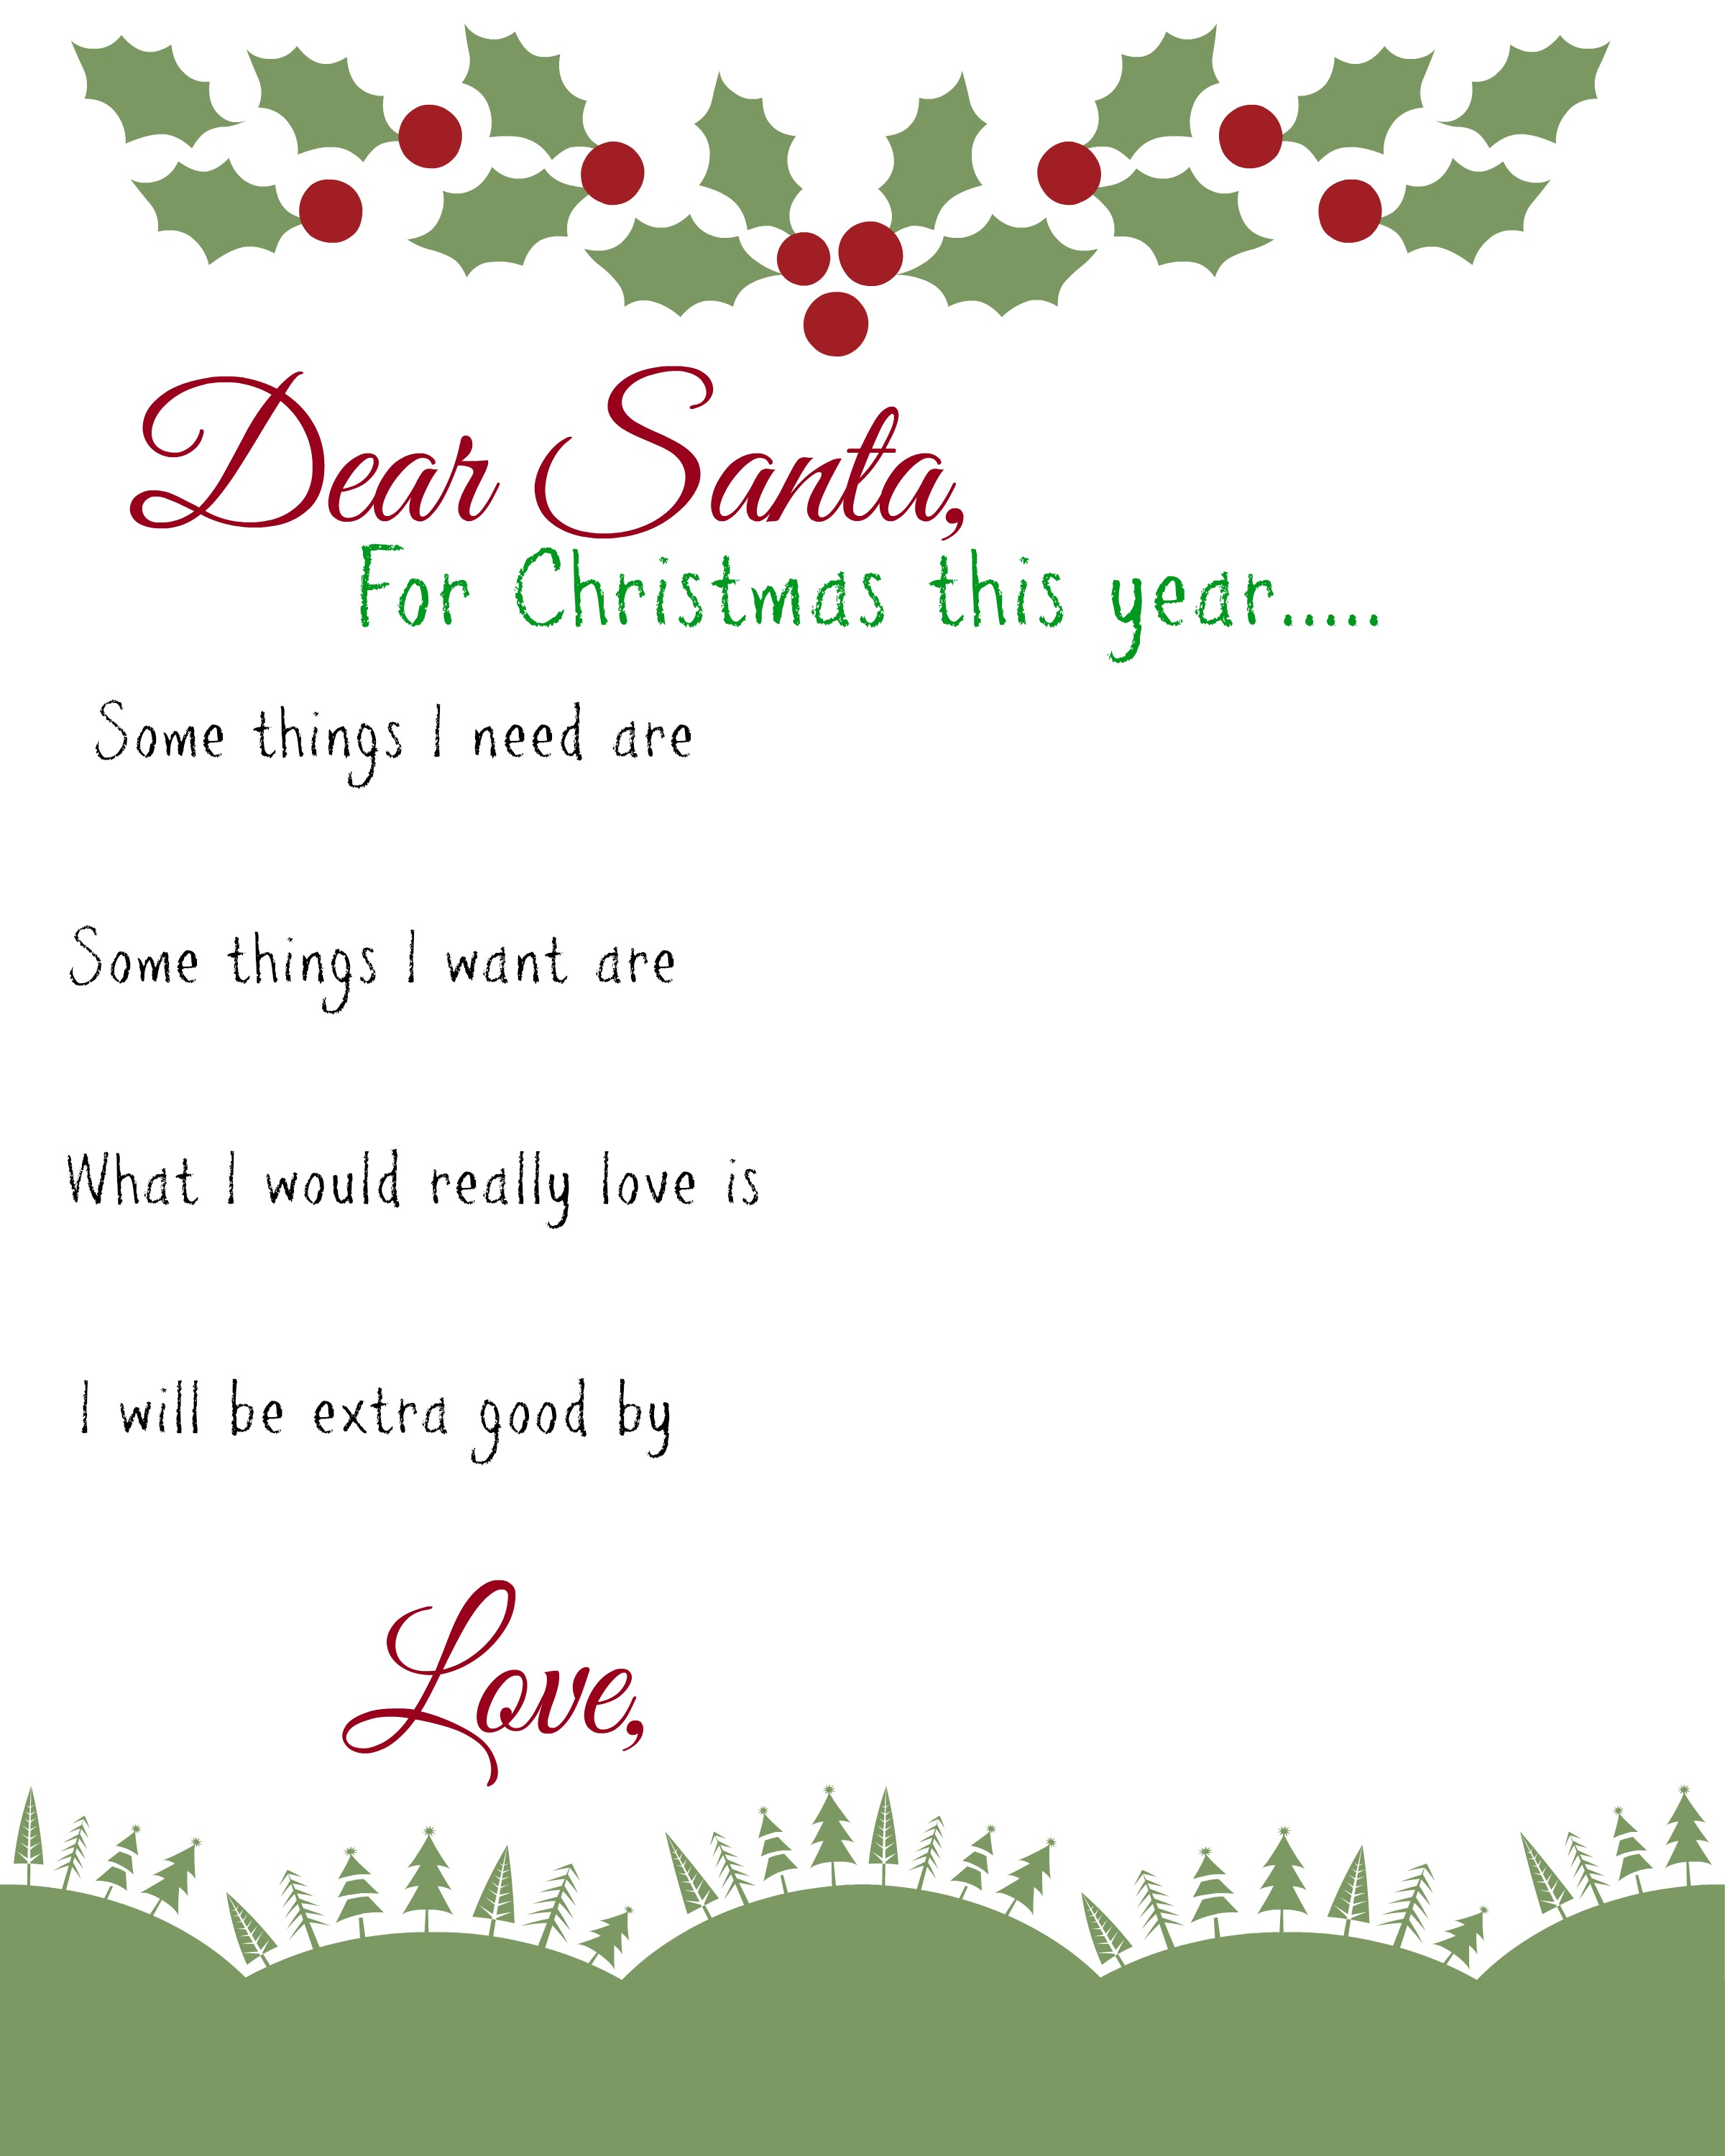 image about Santa Wish List Printable named Pricey Santa: Little ones Motivation Listing Printable - Chaotic Mothers Helper